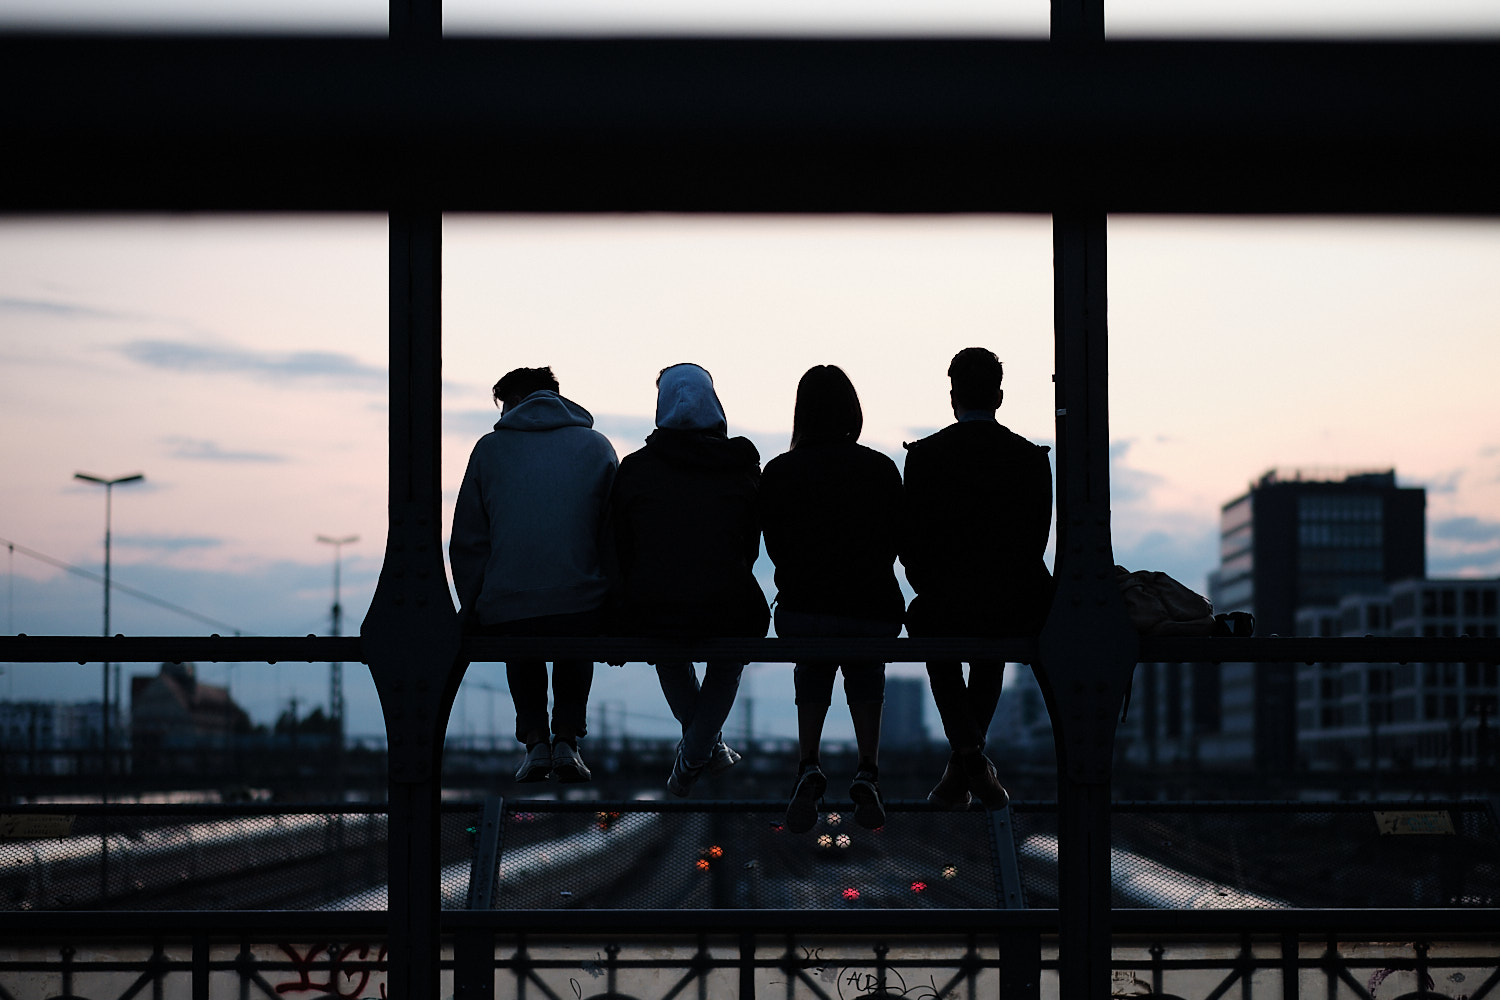 A group of four young boys chat perched over a beam at the Hackerbrücke bridge. In the background the sunset blue sky sets them as dark profiles.